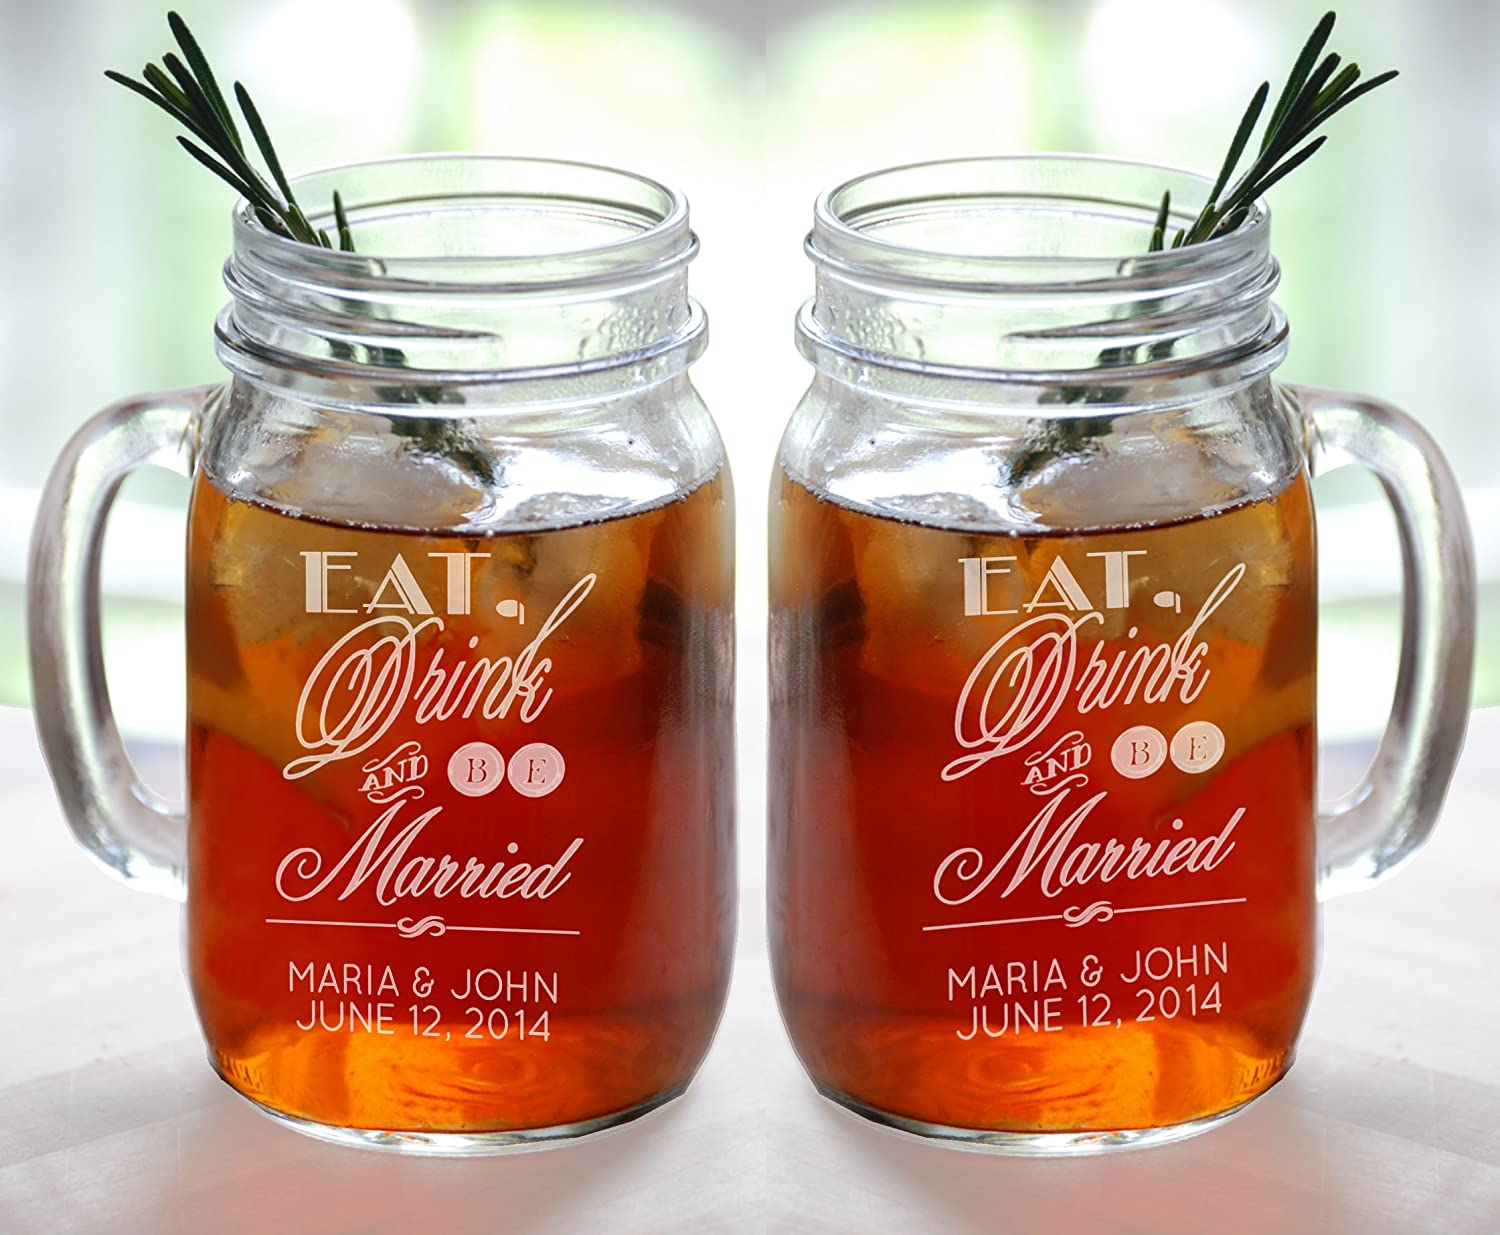 Eat Drink And Be Married Set Of 2 Personalized Mason Jars Drinking Mugs With Handle Mr And Mrs Custom Etched With Name And Date For Wedding